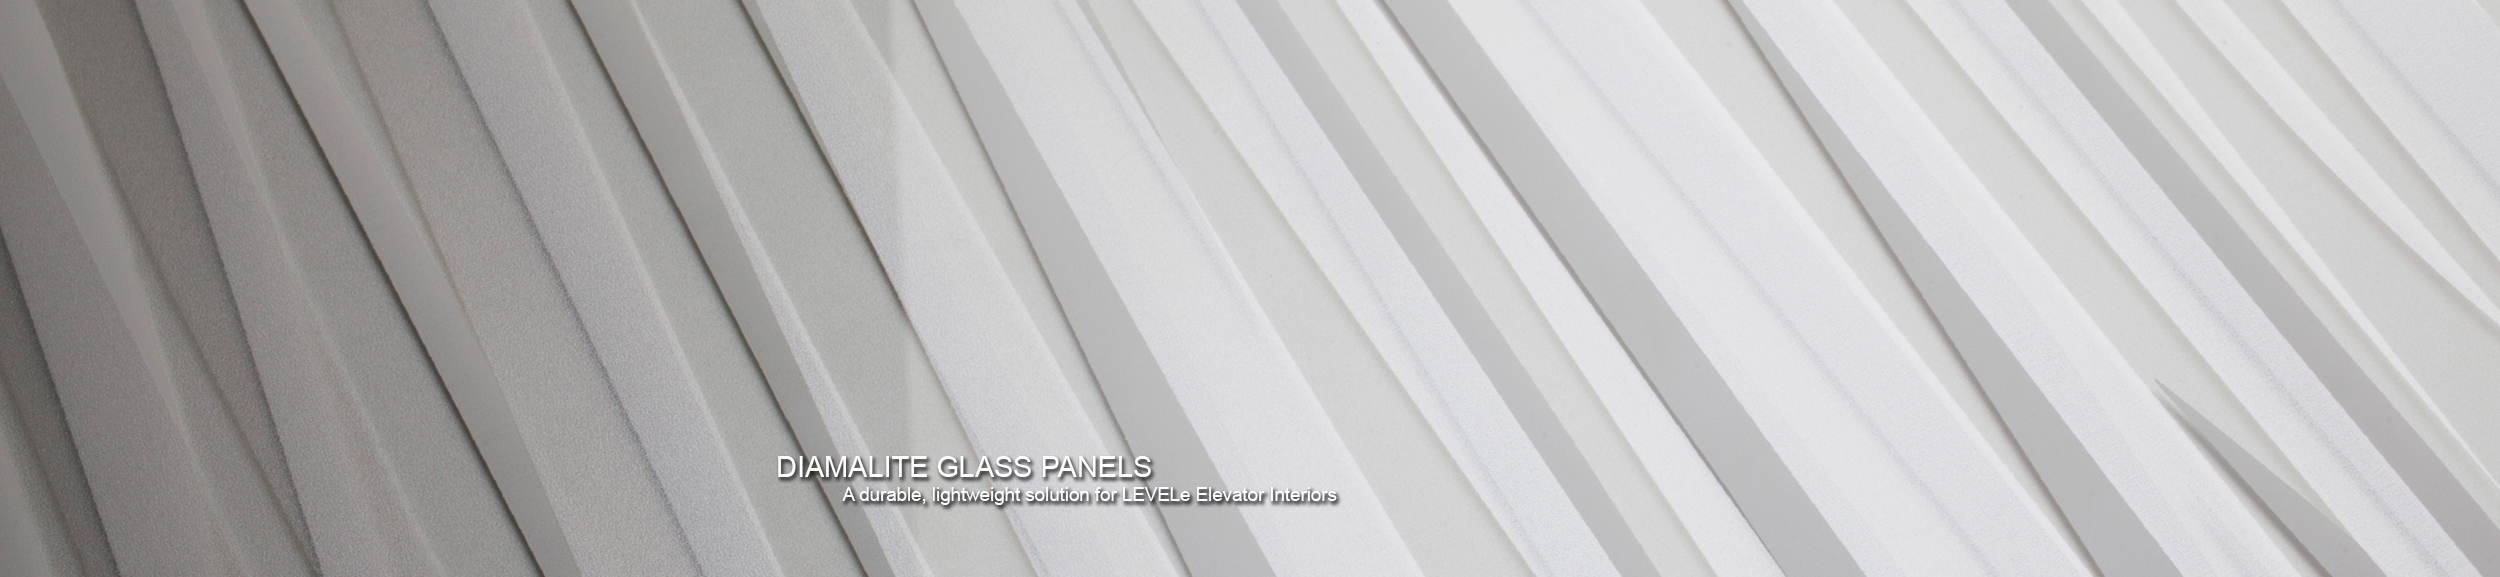 Diamalite Glass Panels